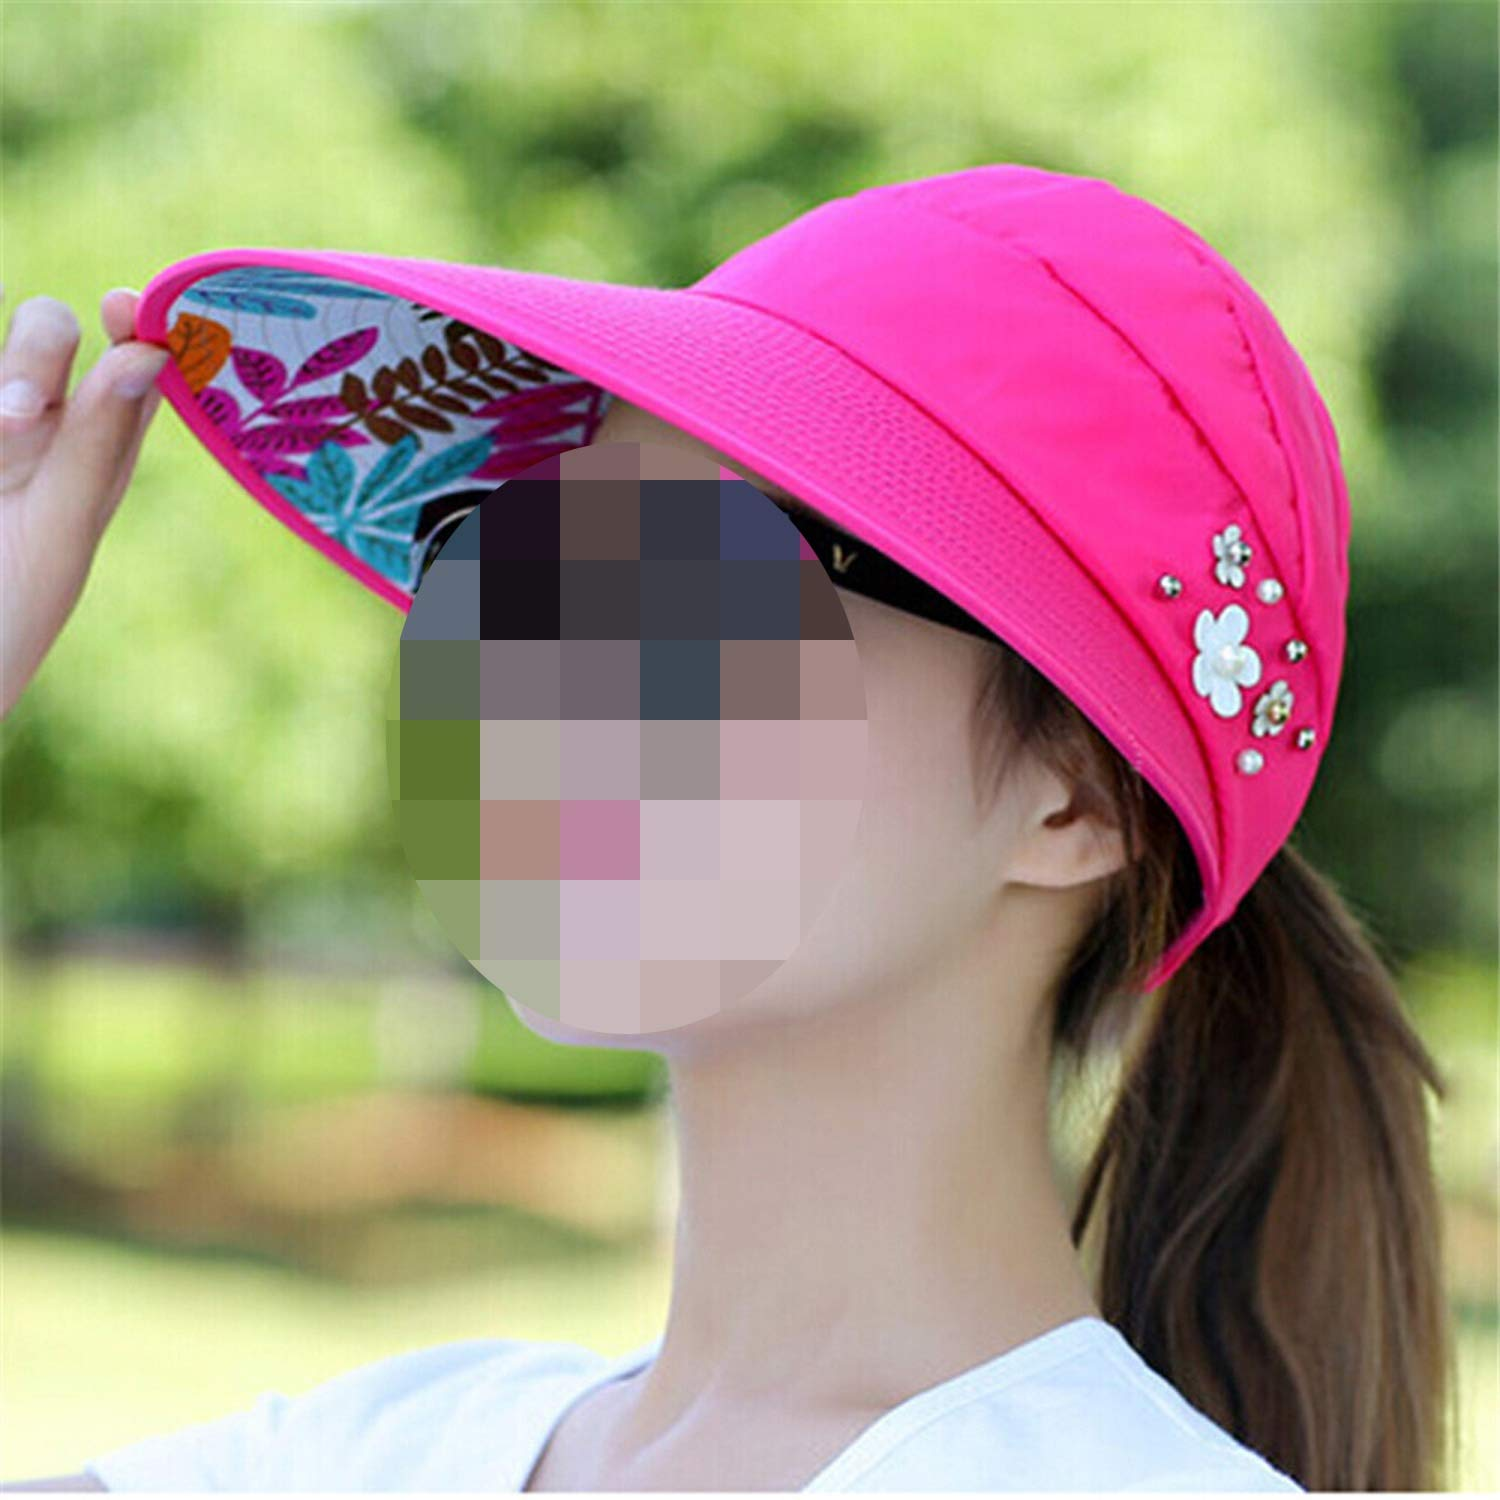 Sun Hats Visors Hat UV Protection Cap Black Womens Summer Caps Ponytail Wide Brim Hat,4 Watermelon Red